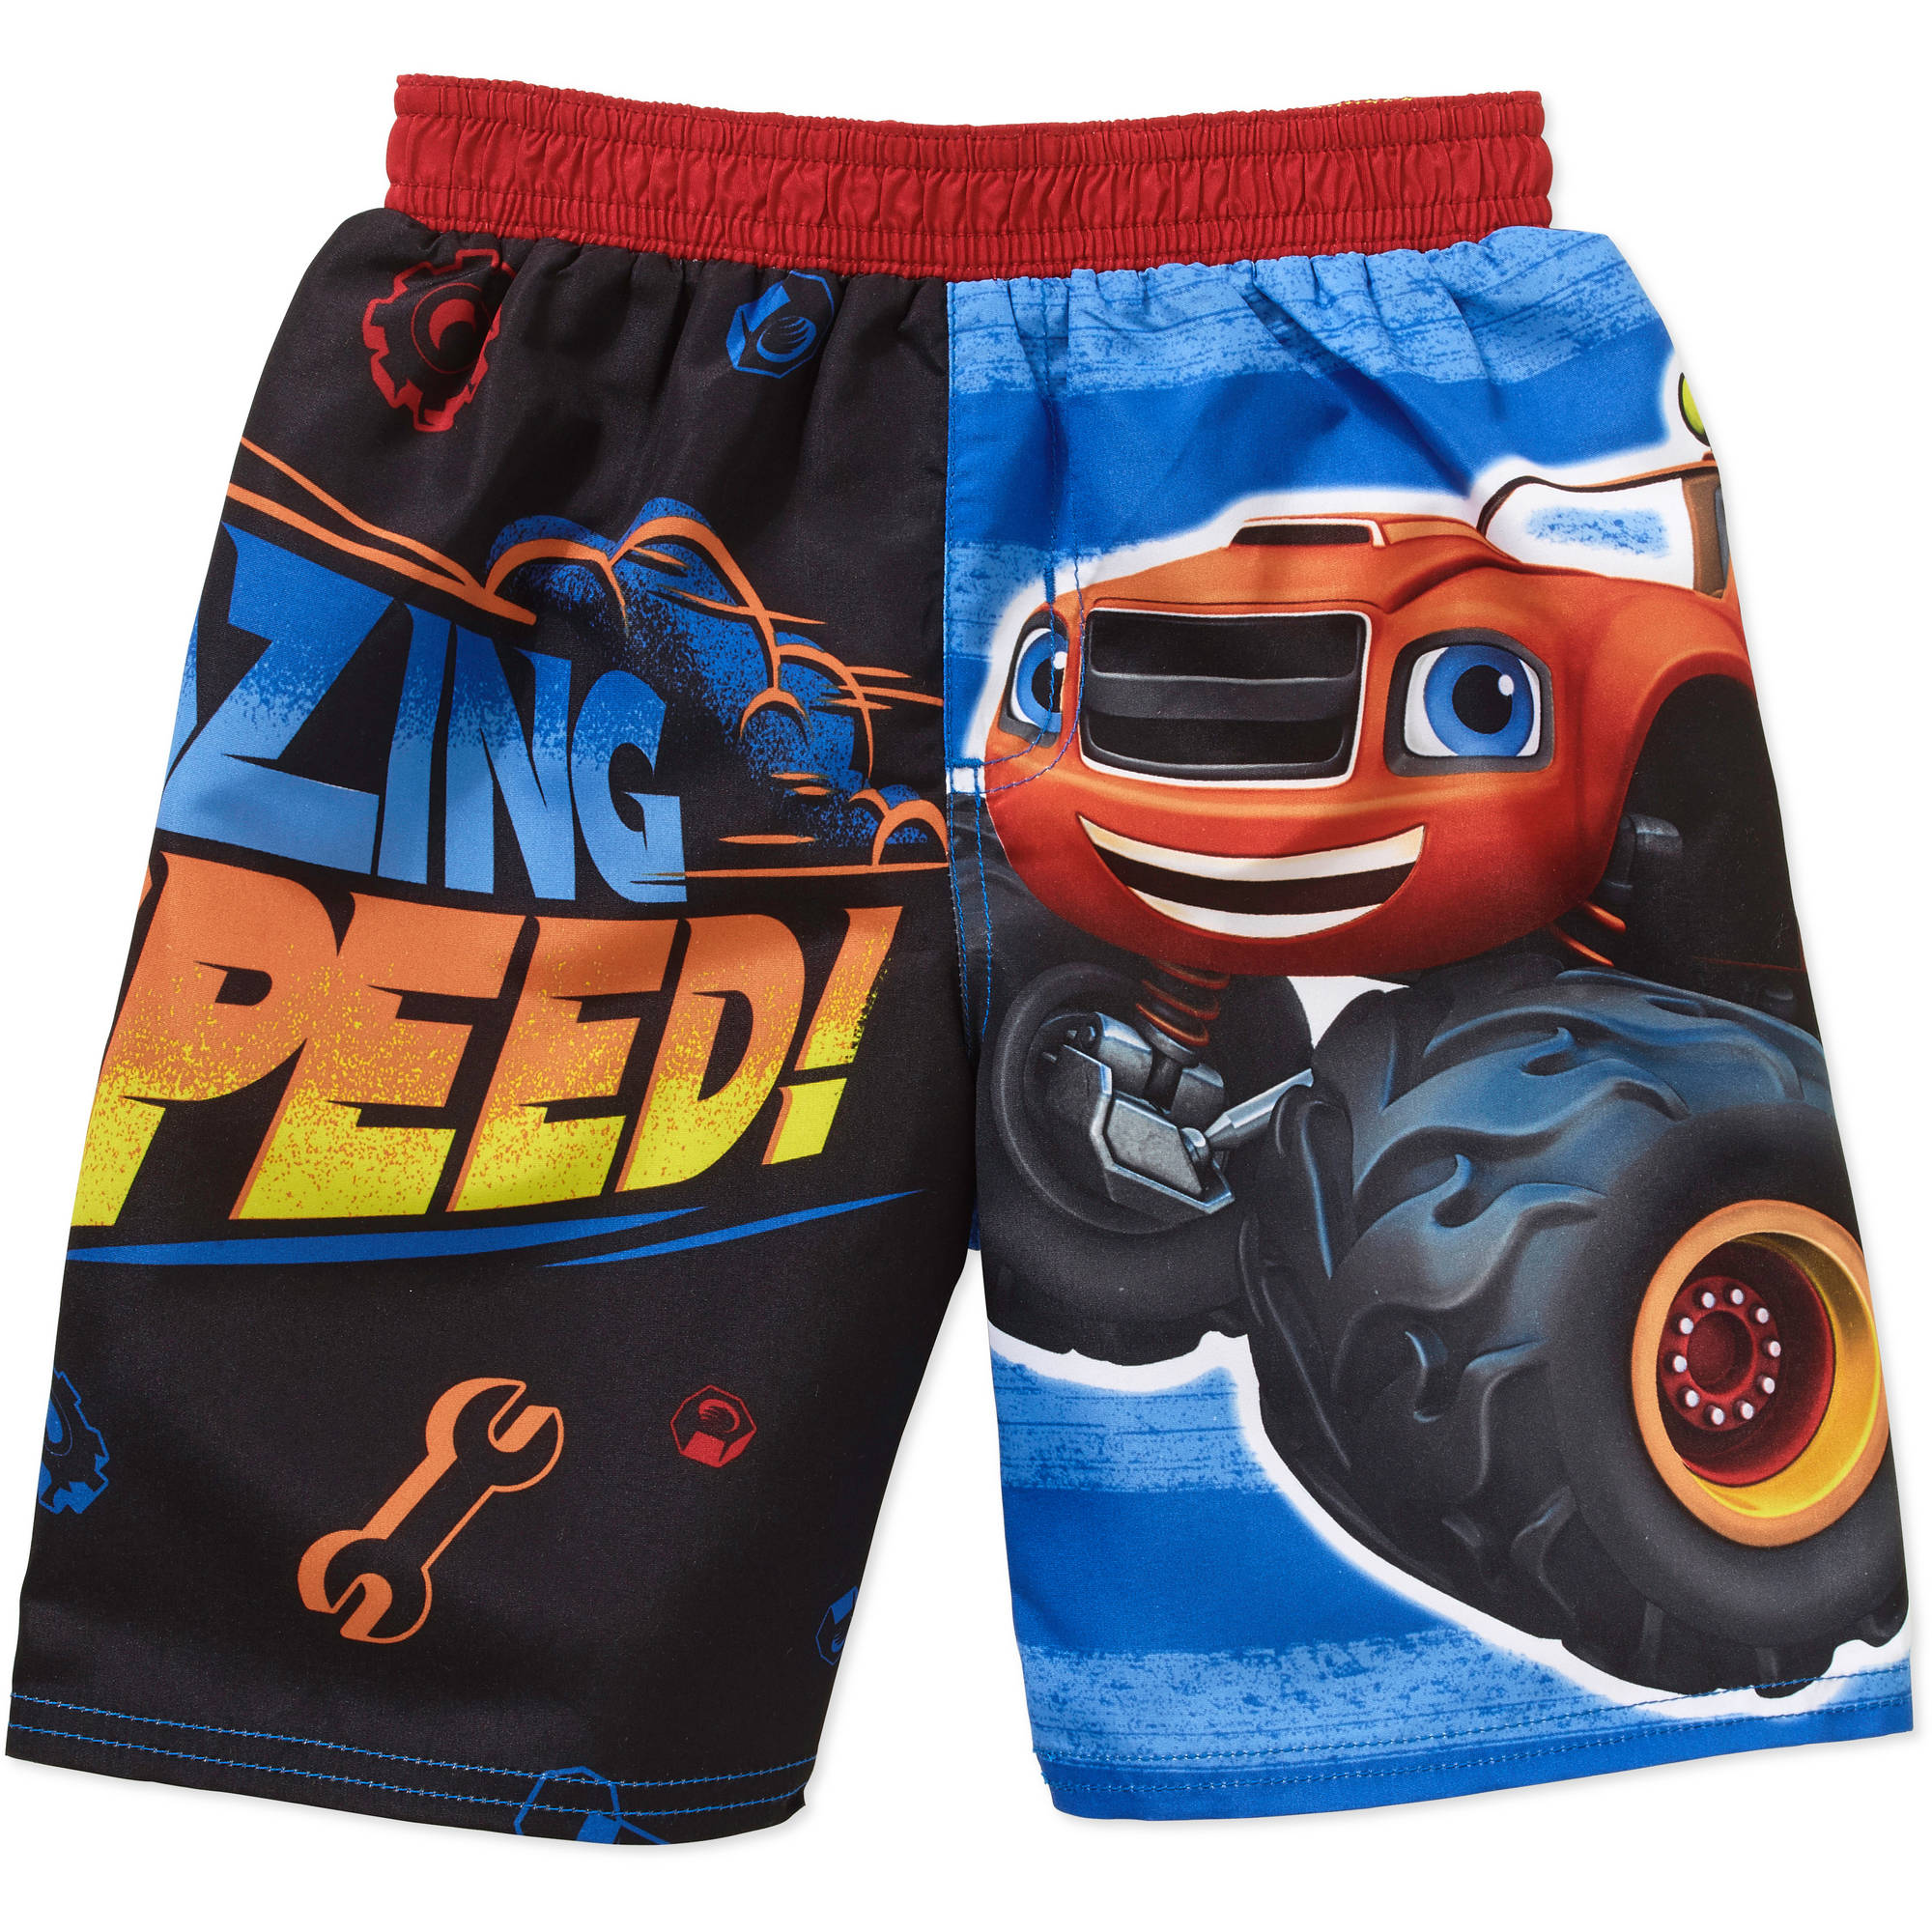 Nickelodeon Blaze and the Monster Machines Toddler Boy Swim Trunks Shorts